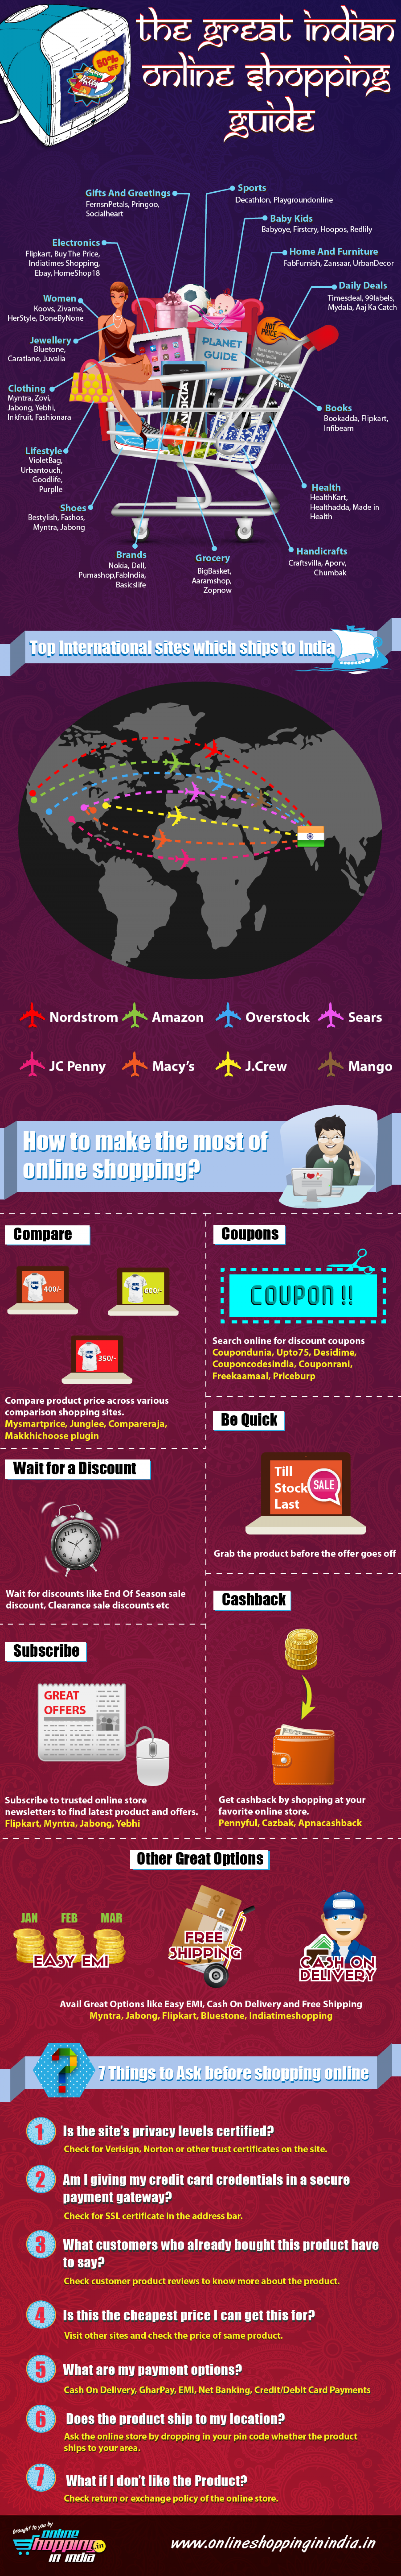 The Great Indian Online Shopping Guide Infographic